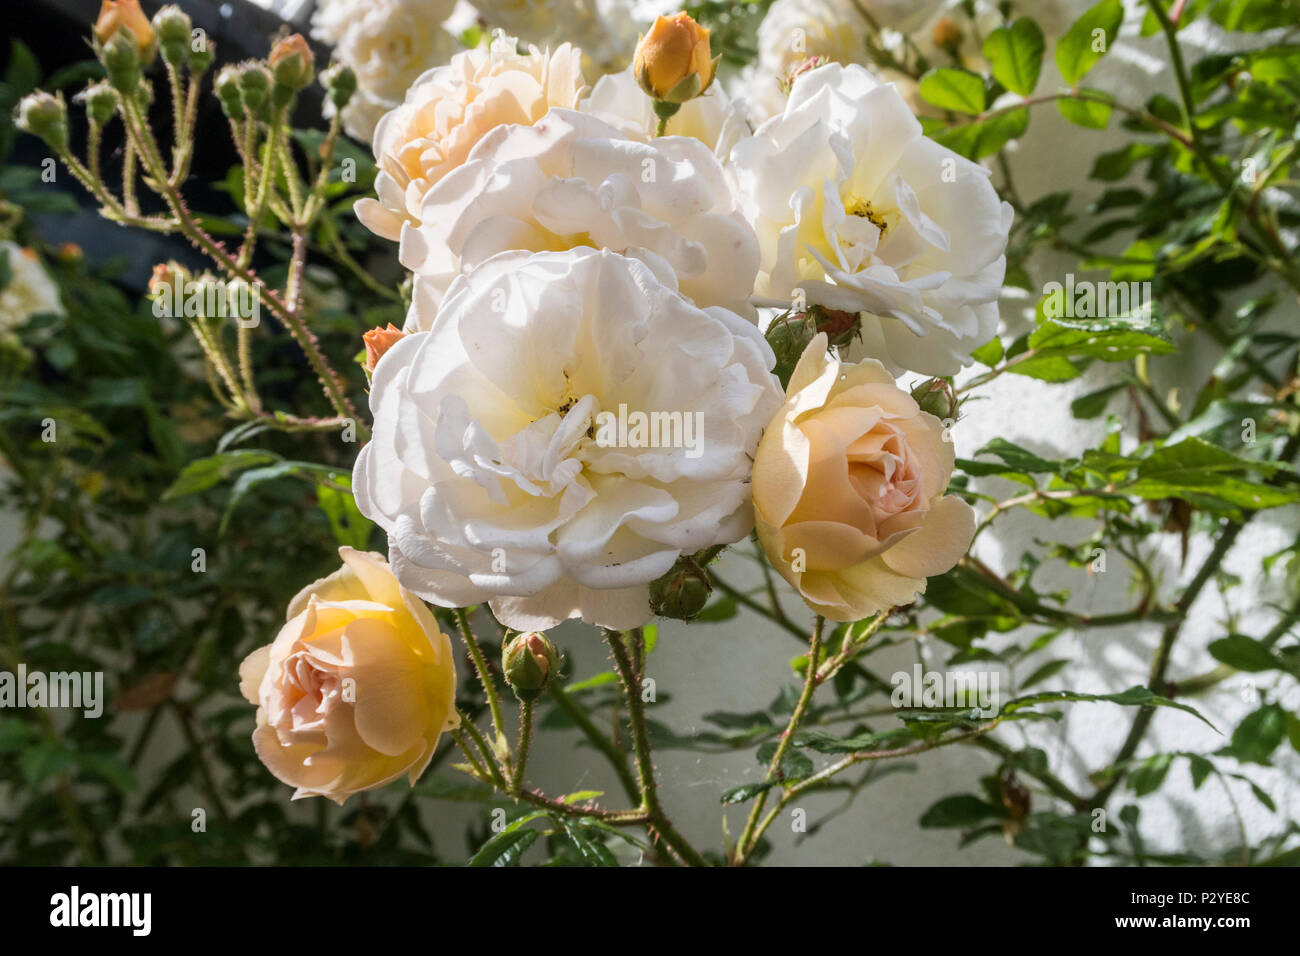 Rose 'Ghislaine de Feligonde', a Musk Rambling Rose. Fragrant semi double white /apricot blooms. In bud and flower. Rosa. - Stock Image